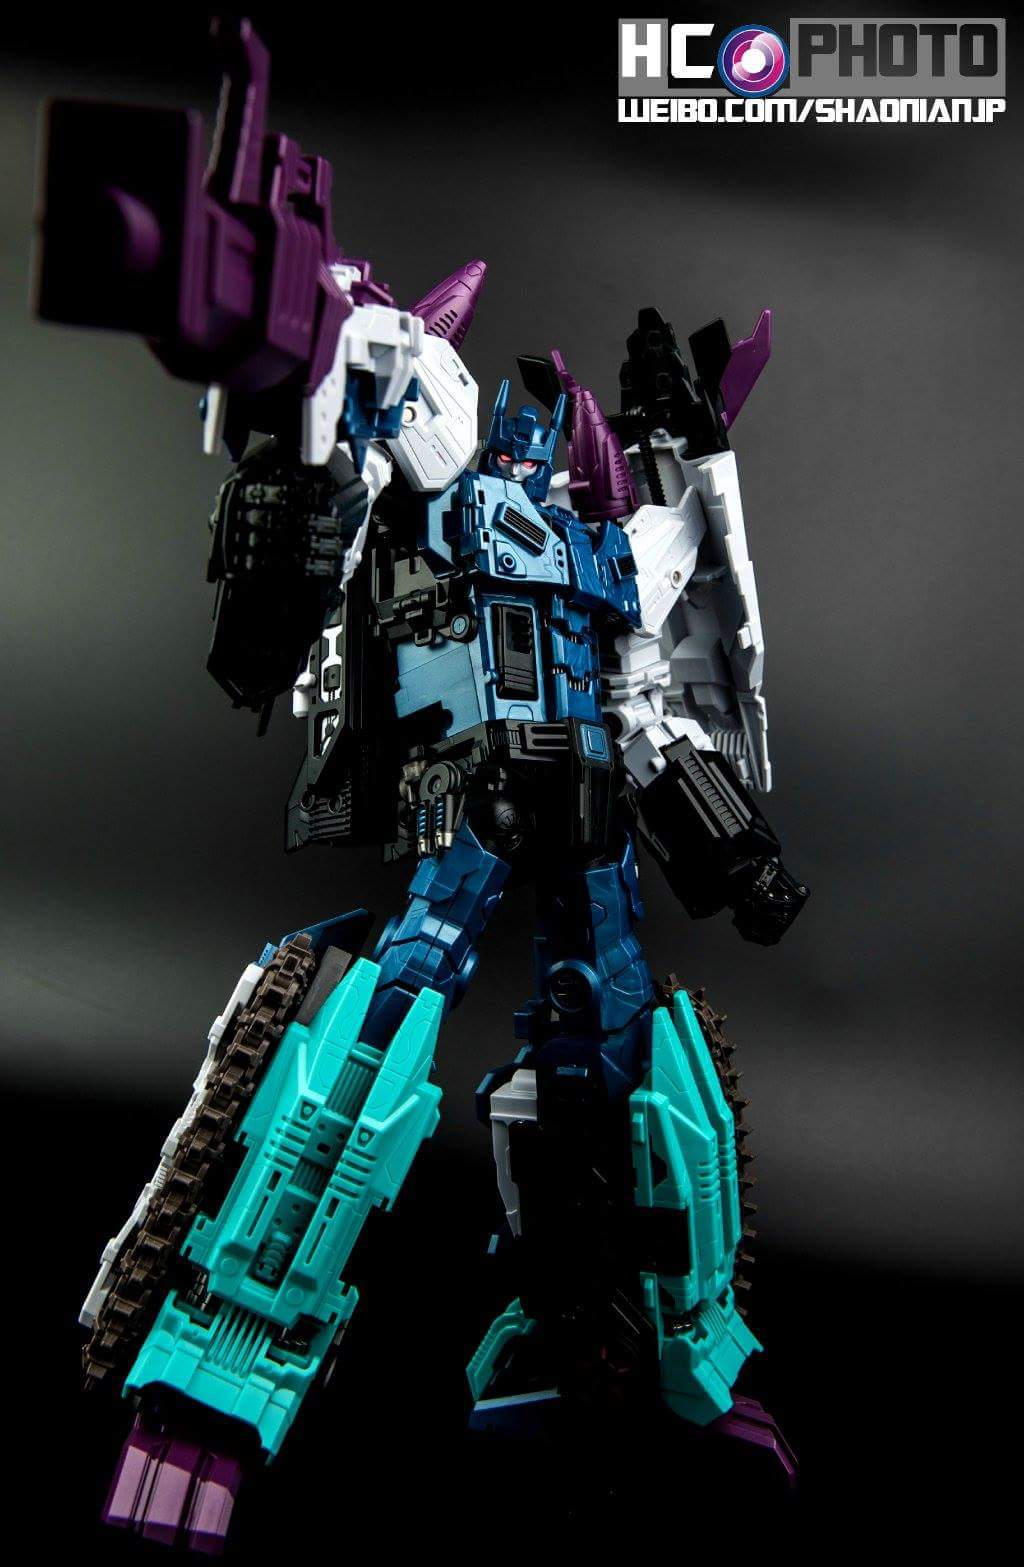 [Mastermind Creations] Produit Tiers - R-17 Carnifex - aka Overlord (TF Masterforce) - Page 3 KcUJQw4f